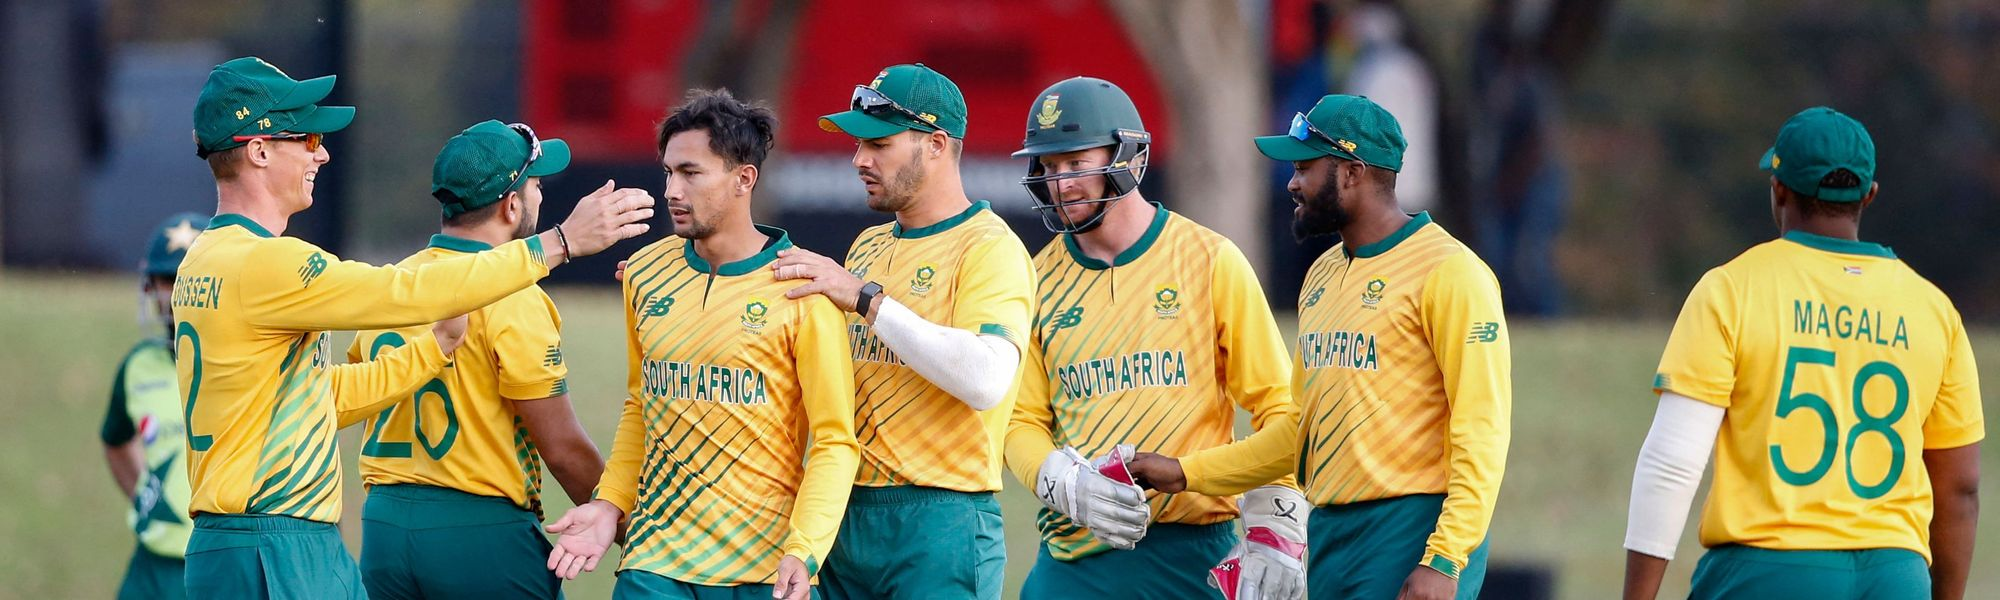 South Africa Team Squad announcement